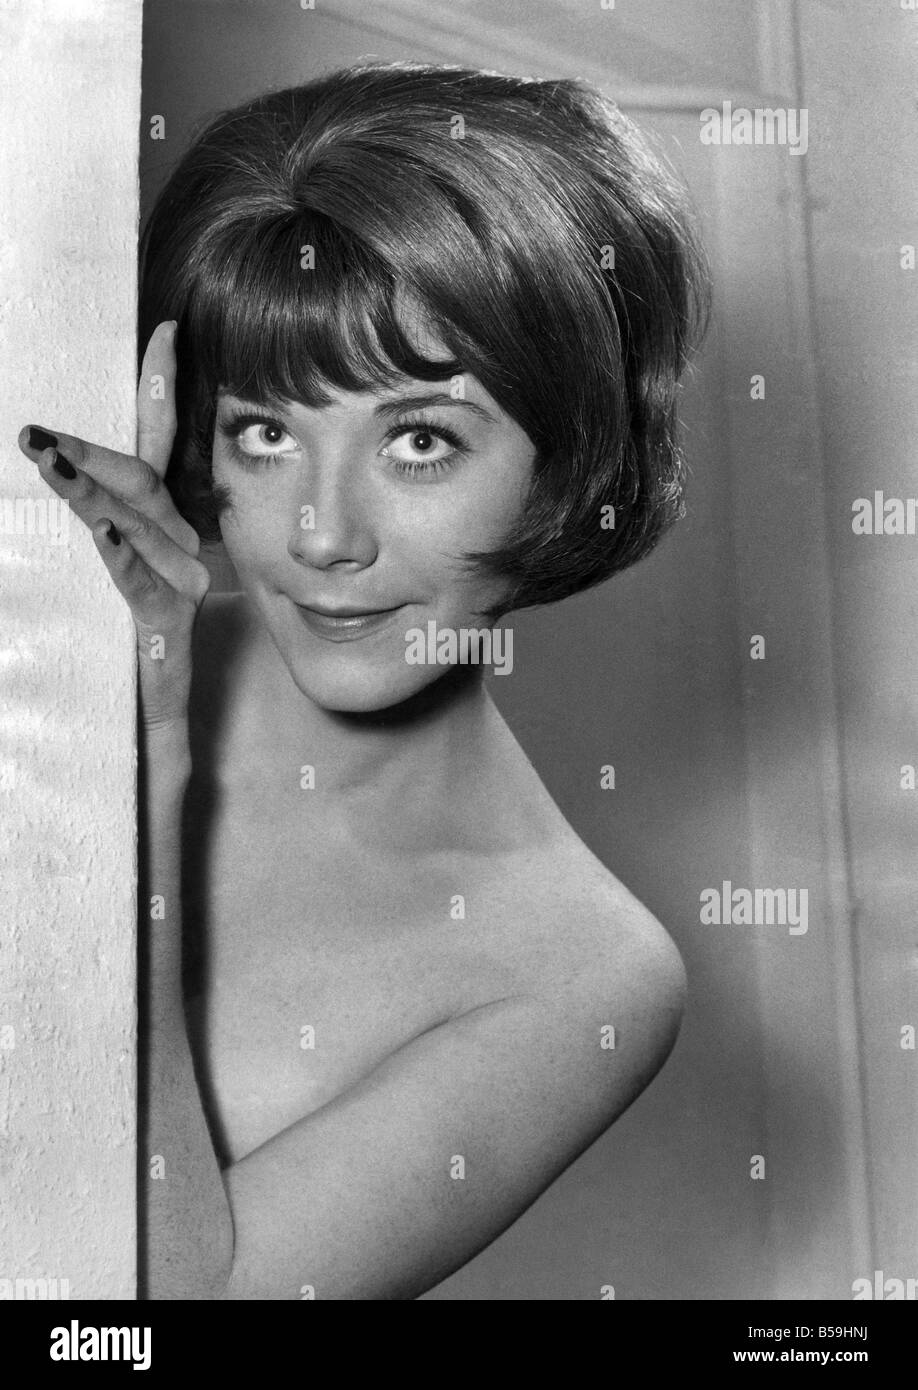 Actress linda thorson as a brunette january 1968 p008075 stock actress linda thorson as a brunette january 1968 p008075 thecheapjerseys Images